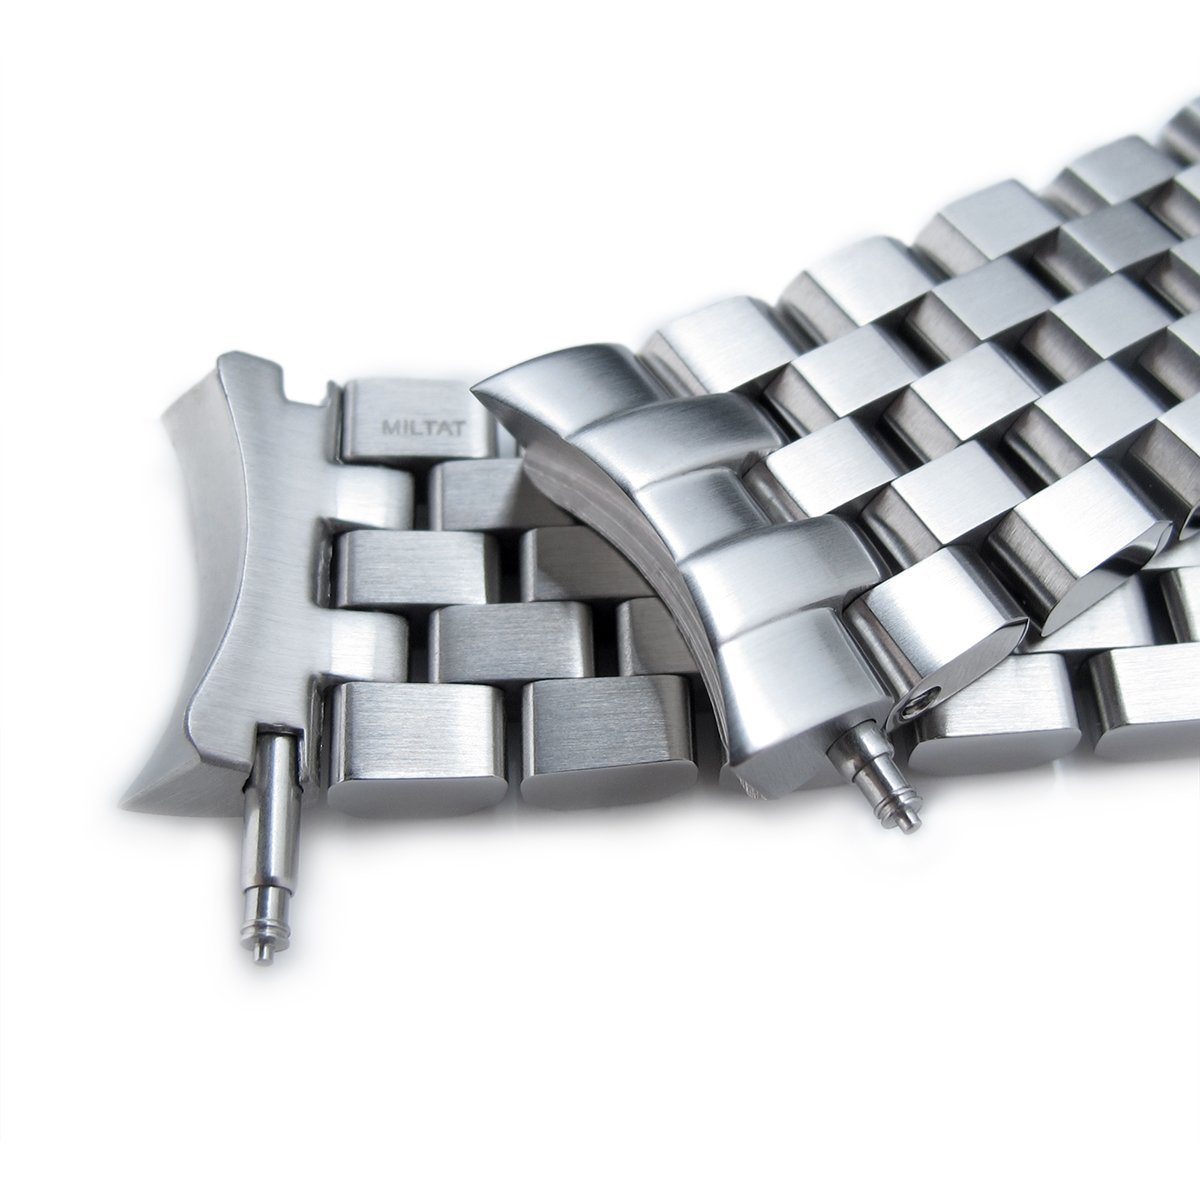 Super Engineer II Watch Bracelet for SEIKO SKX007 SKX009, Brushed, Button Chamfer by Seiko Replacement by MiLTAT (Image #3)